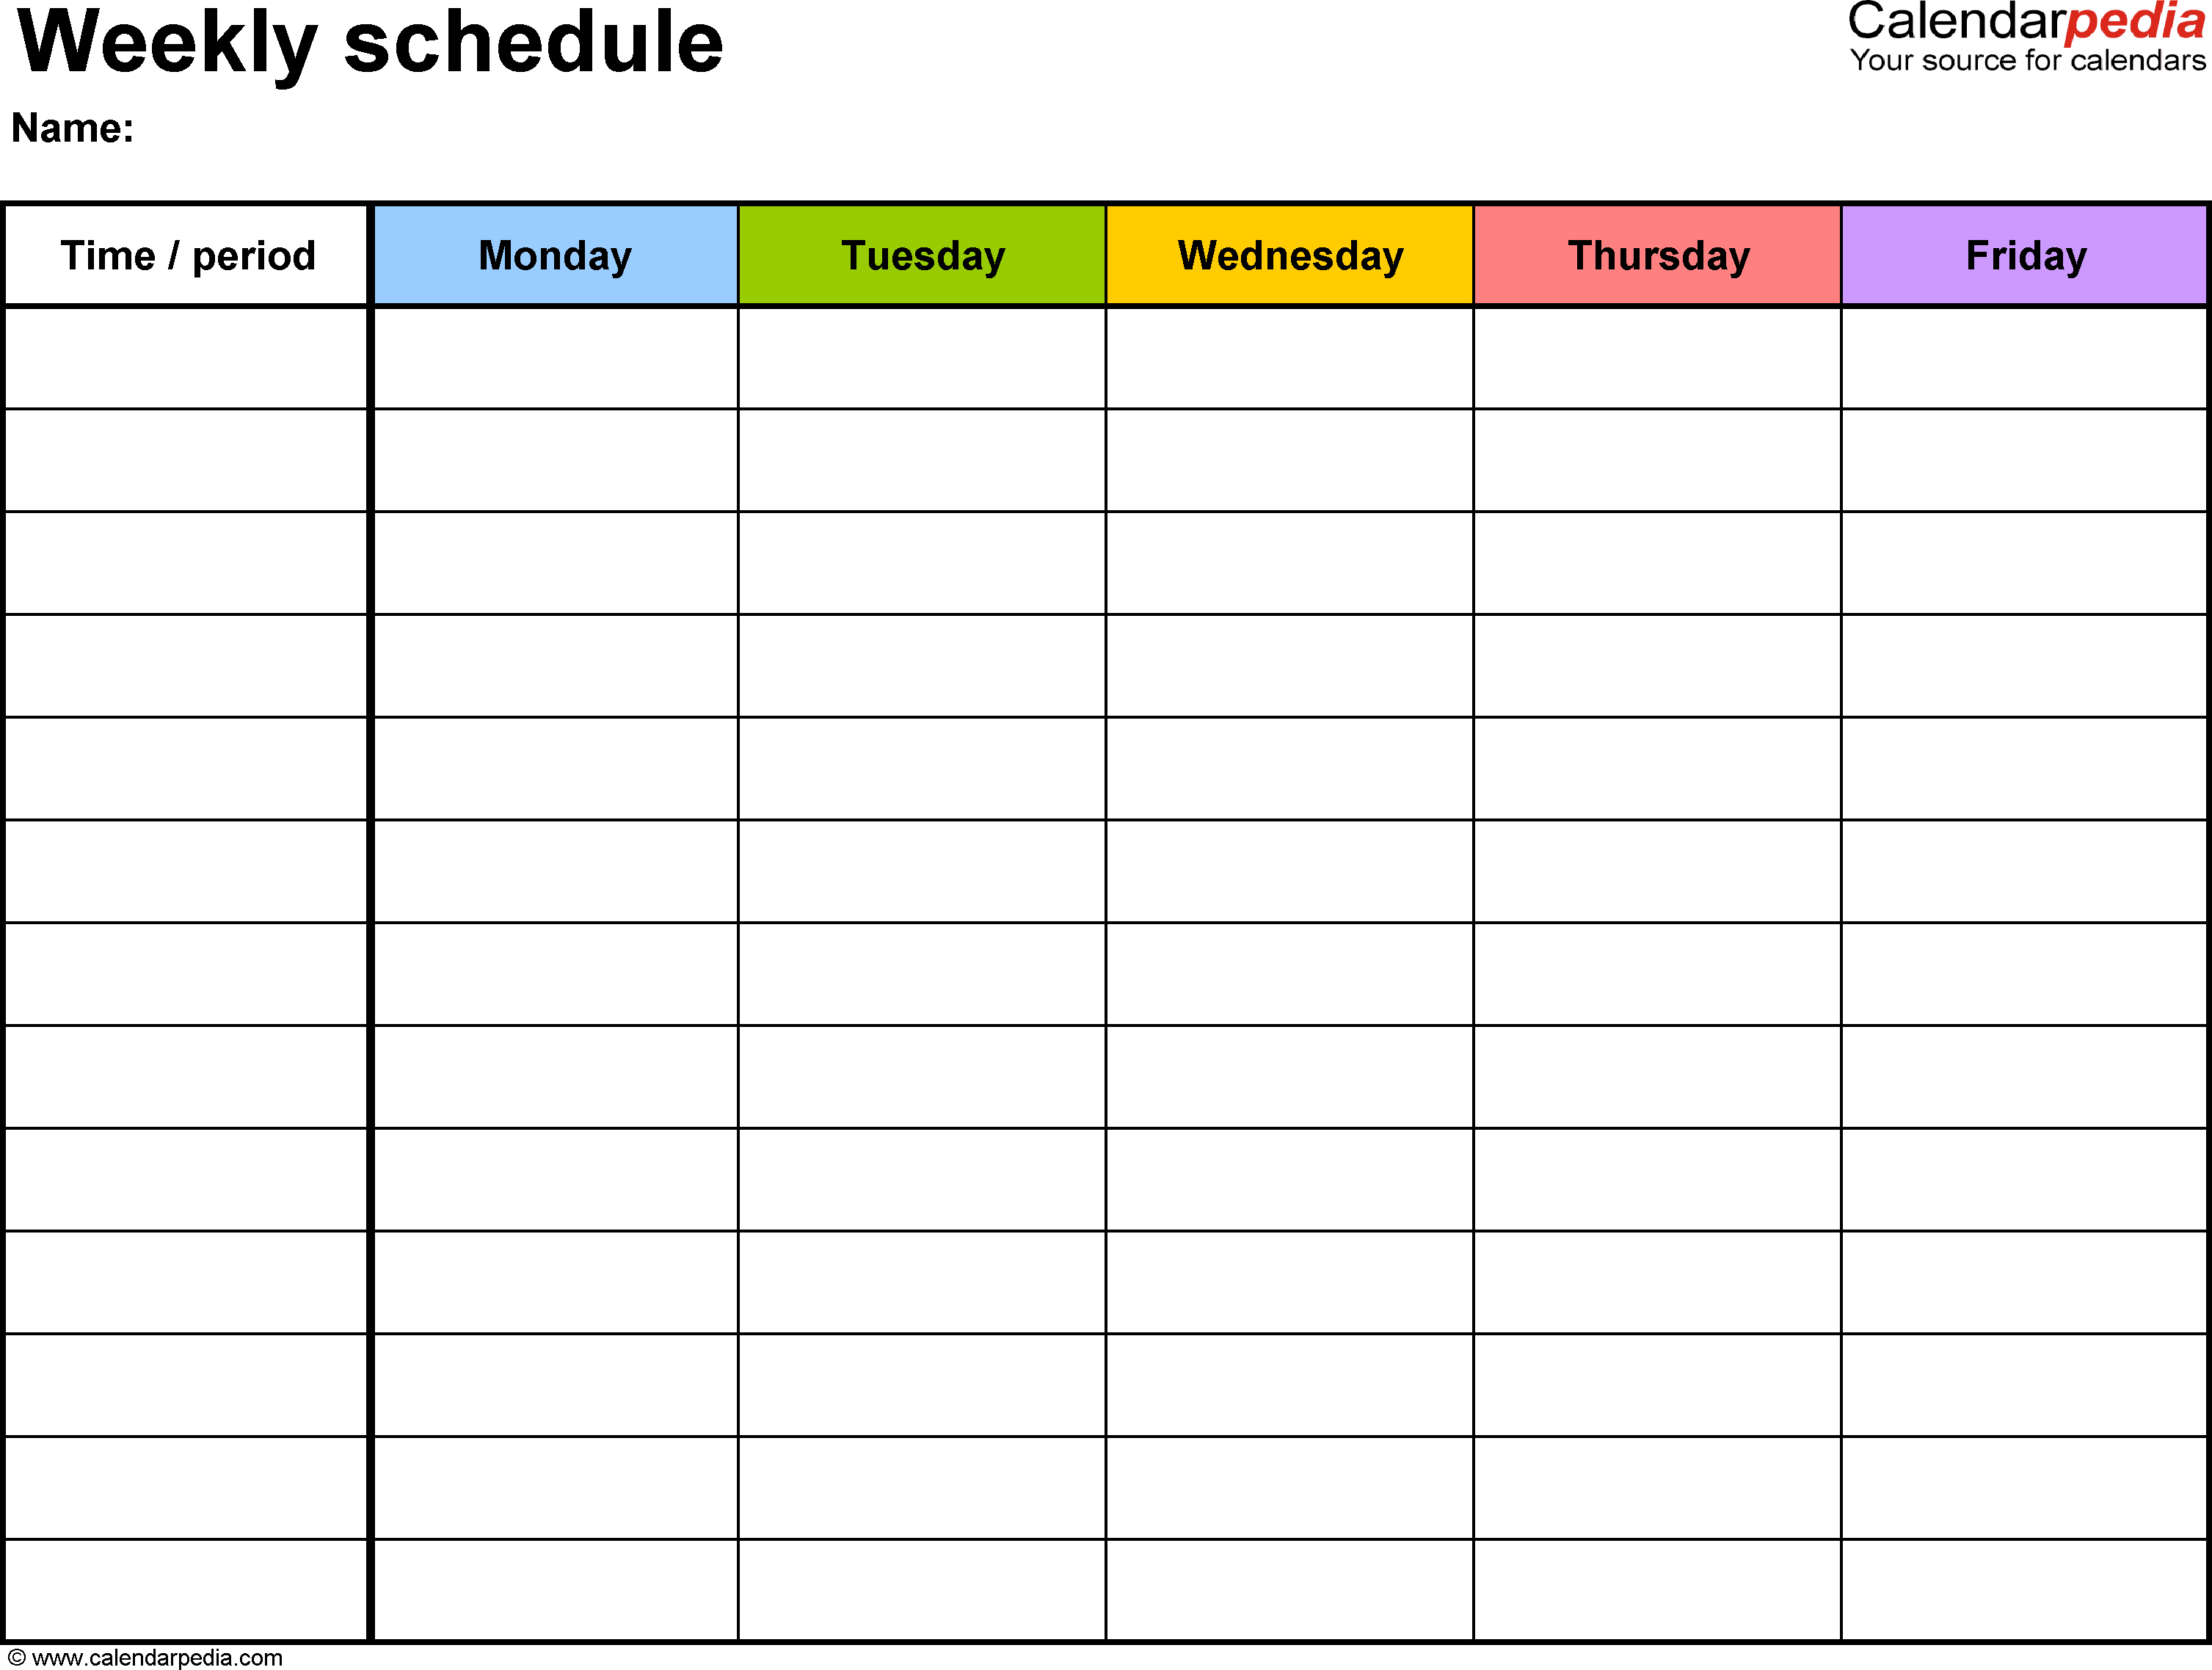 Weekly Schedule Template For Word Version 1: Landscape, 1 regarding Printable Weekly Calendar Monday Through Friday